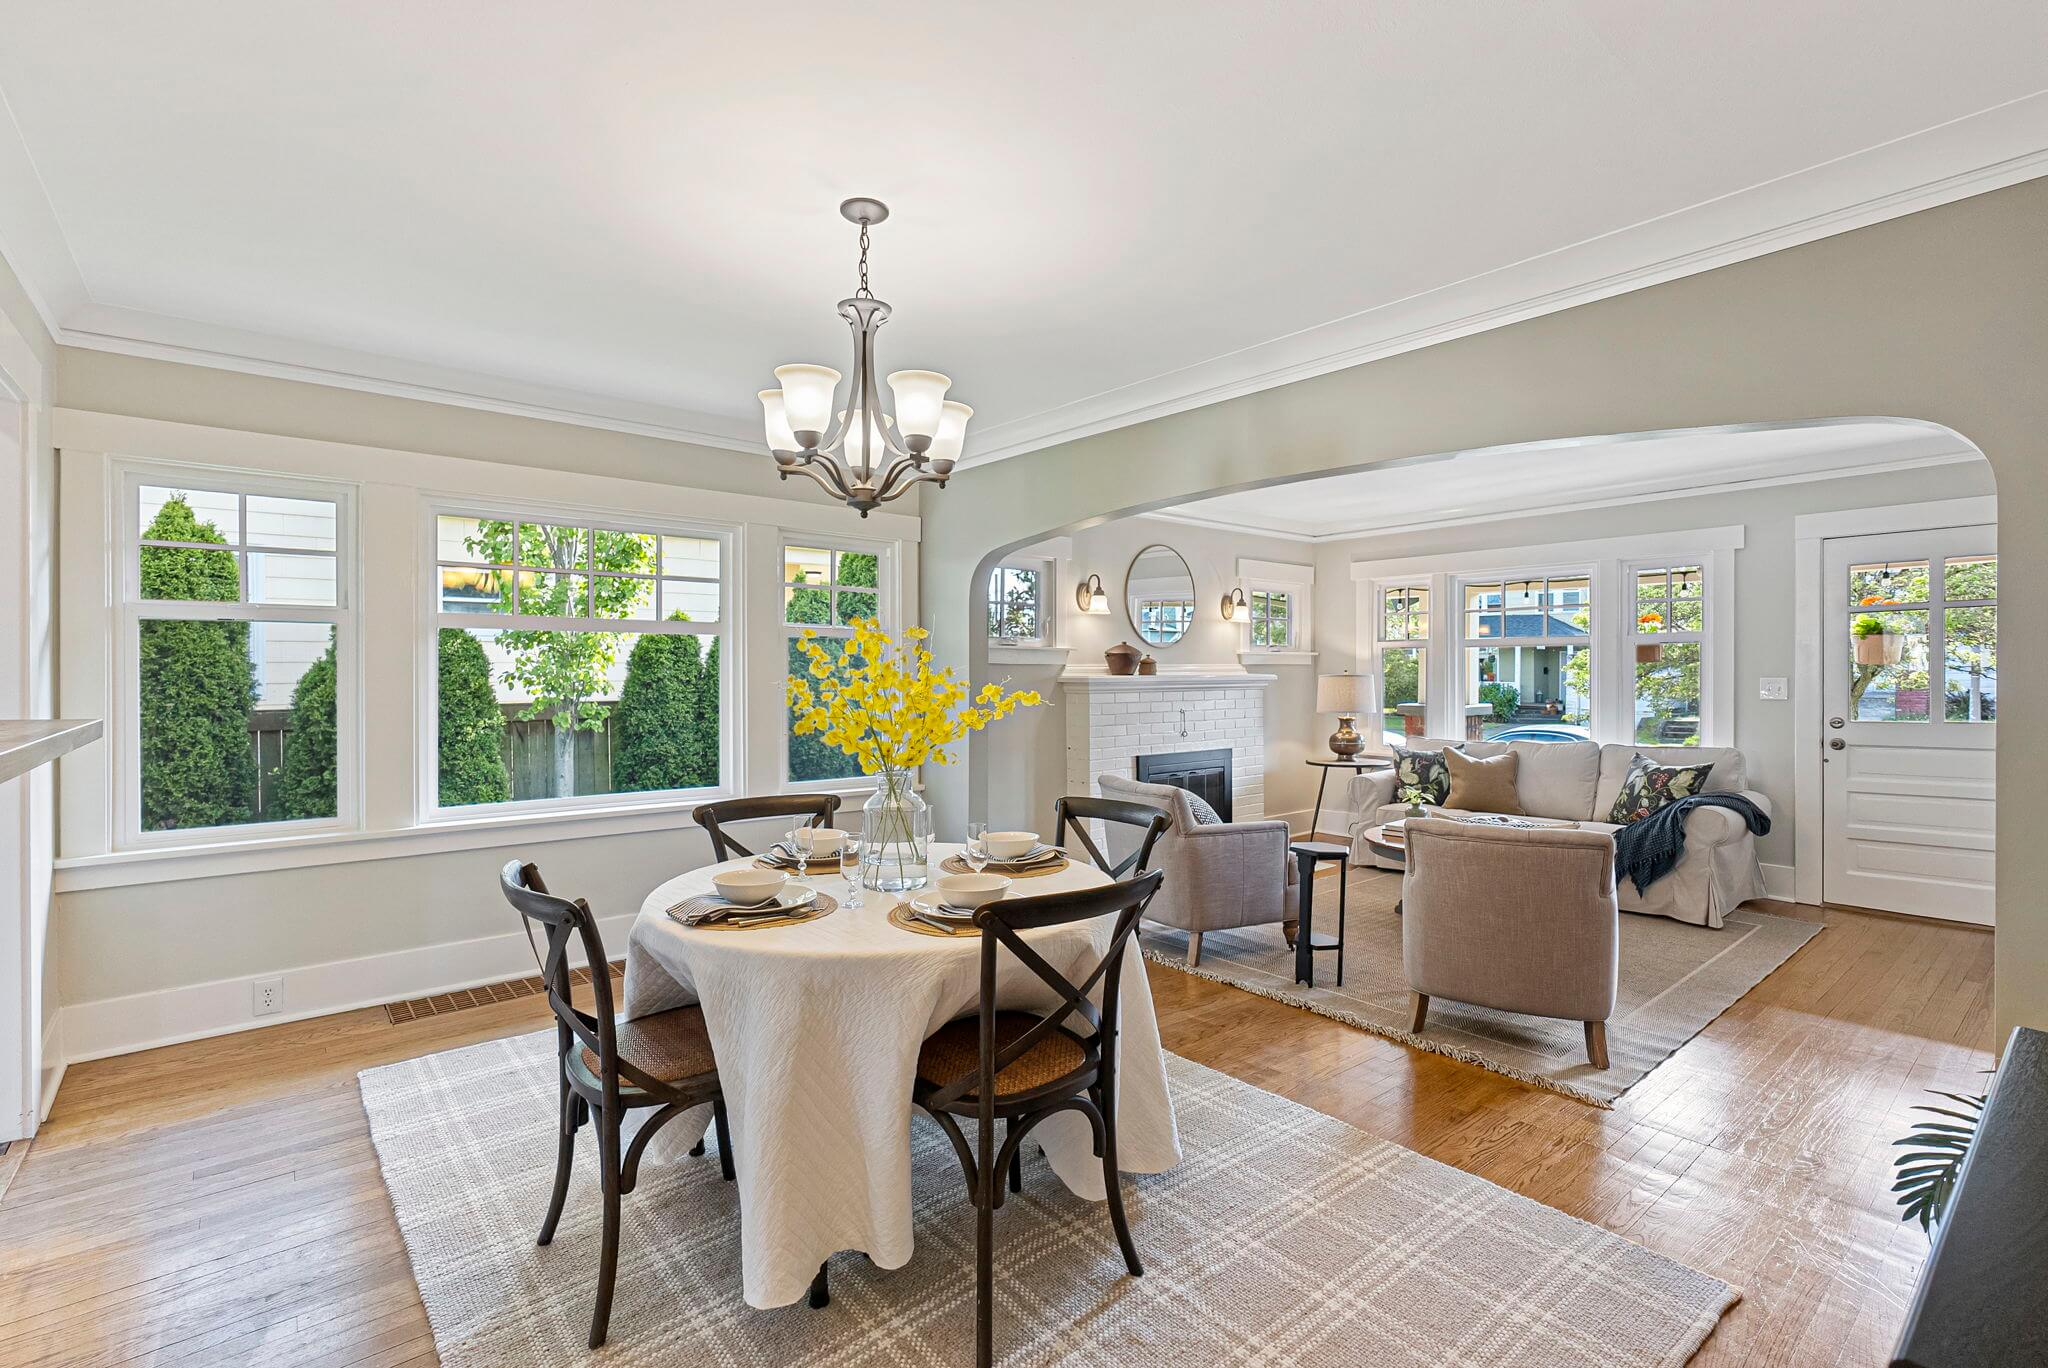 Dining room is open to the living room